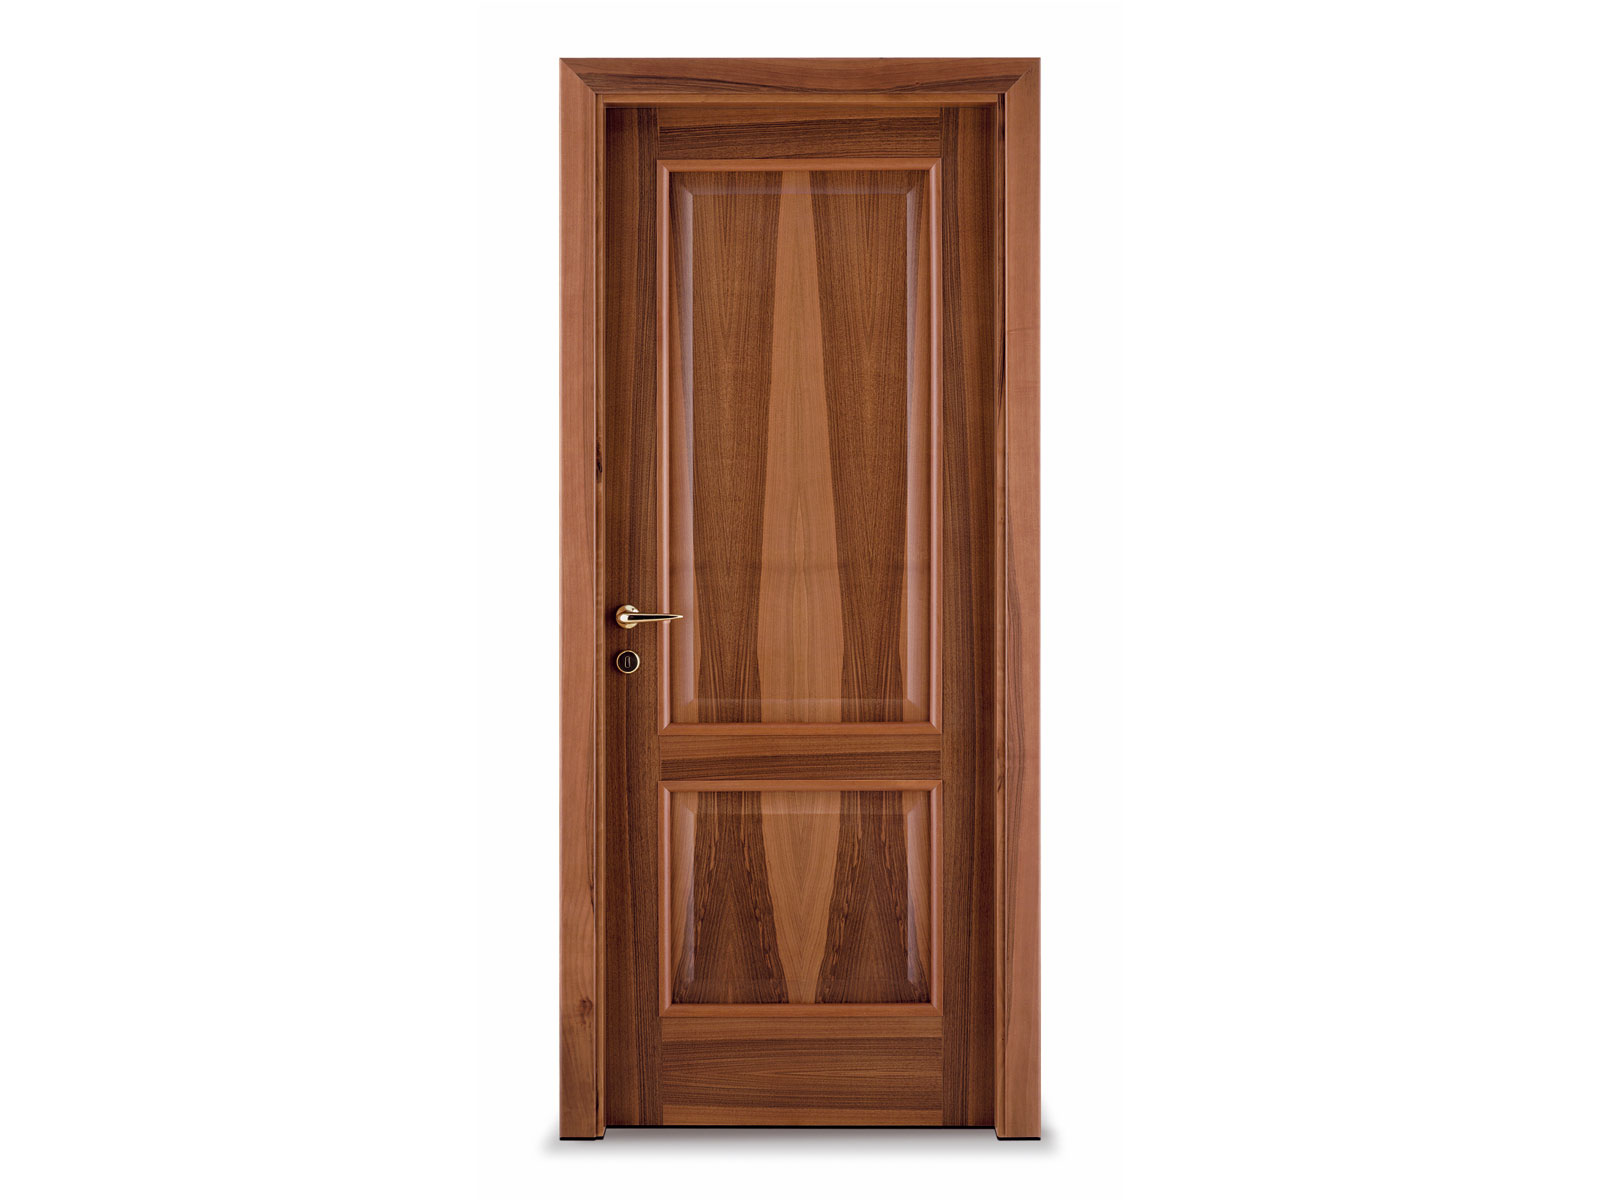 Hinged wooden door classic by ghizzi benatti for Wooden door pattern